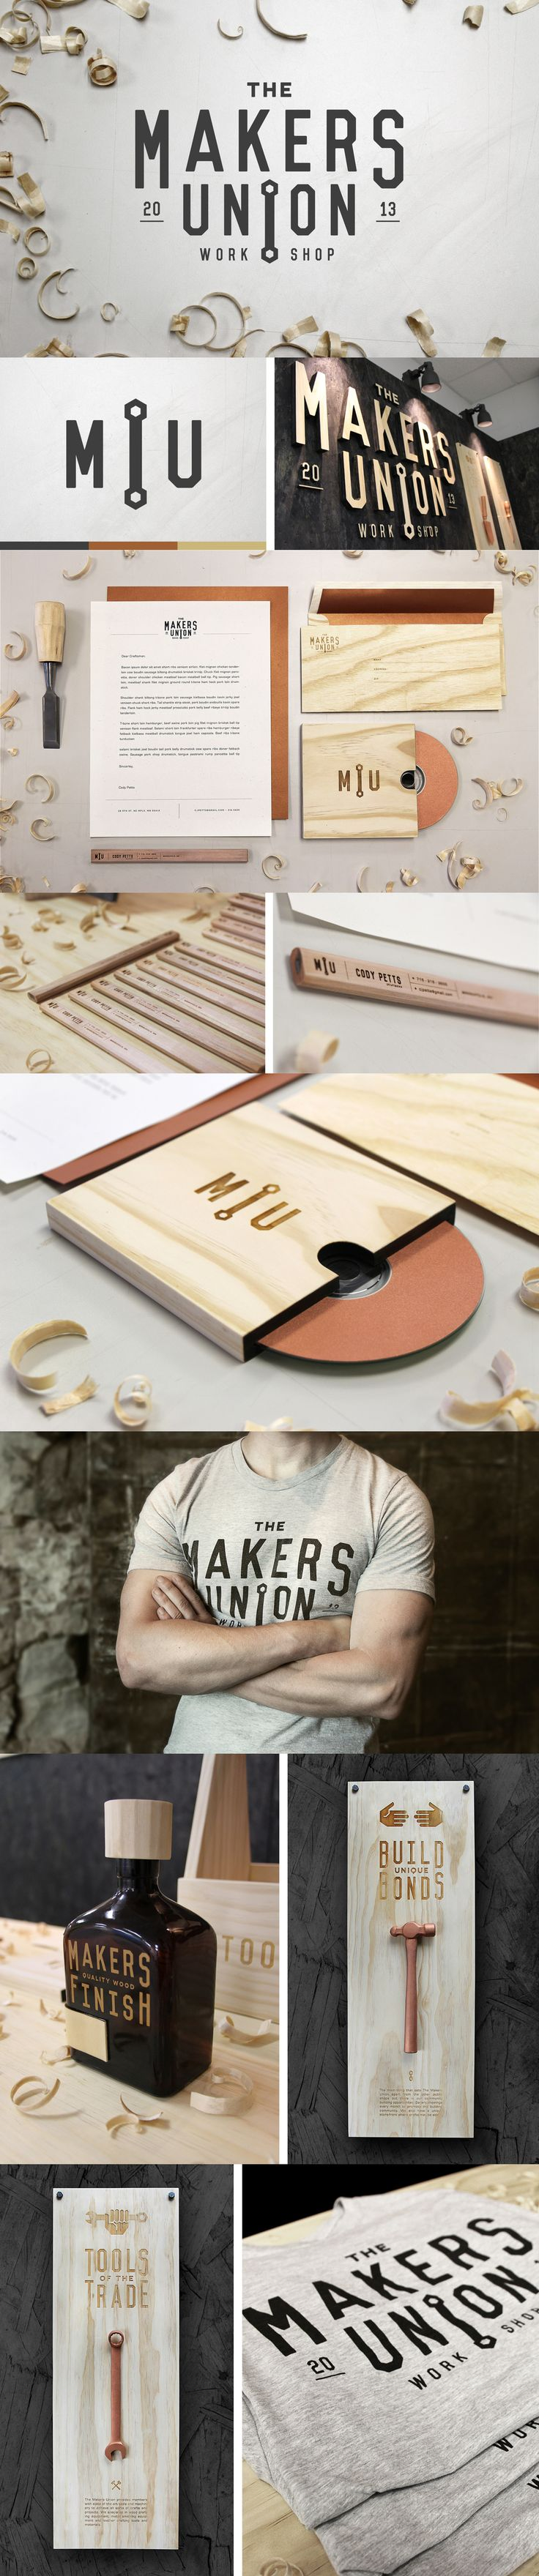 The Makers Union branding by Cody Petts